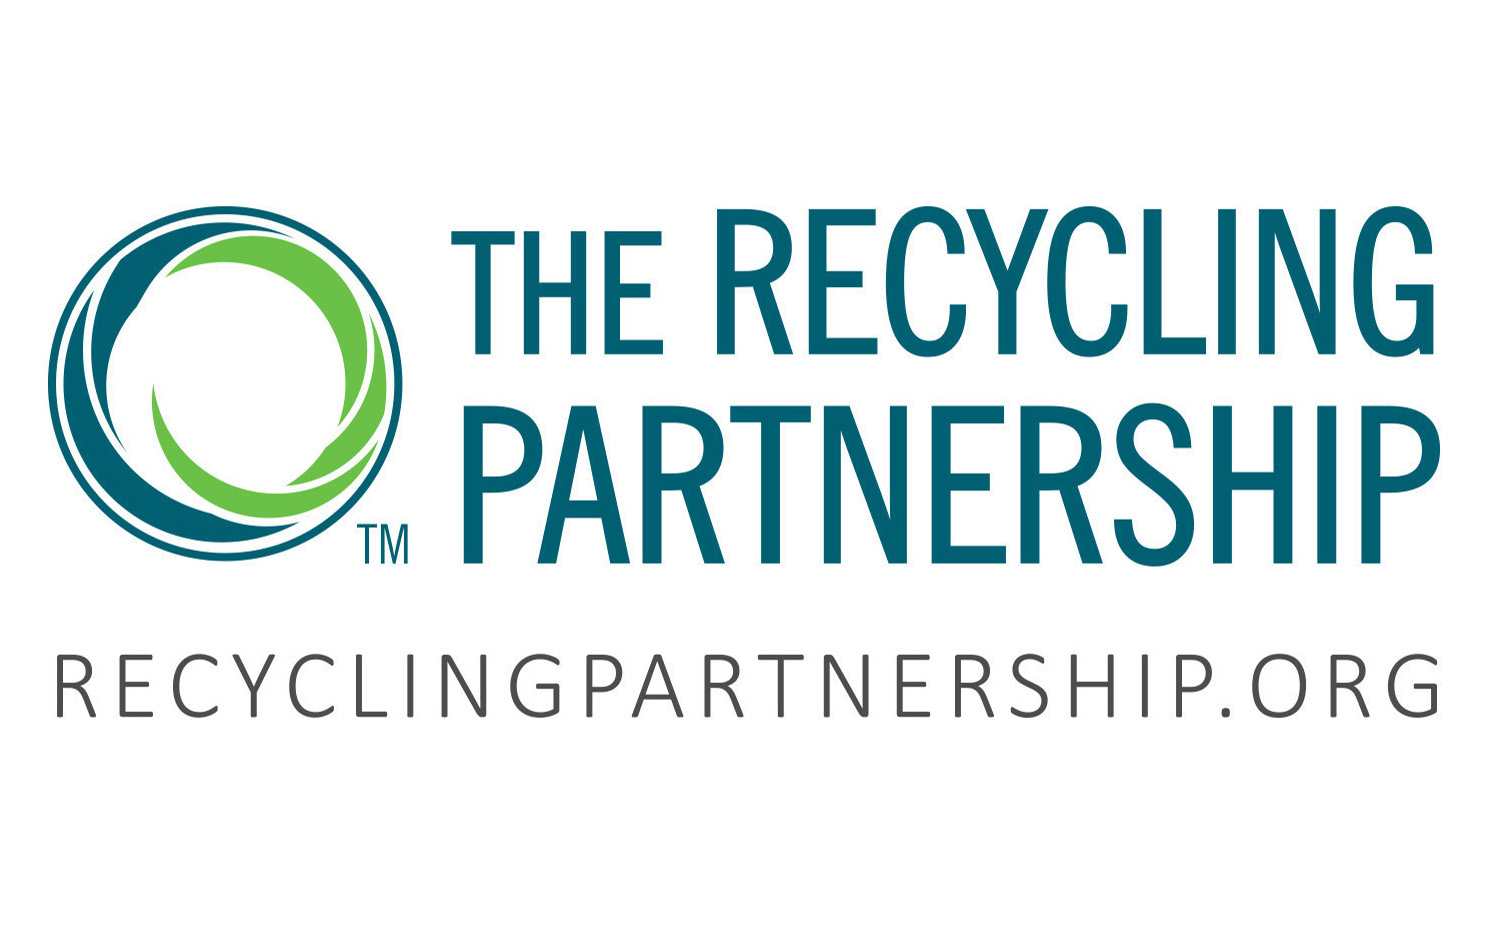 The Recycling Partnership creates first US roadmap